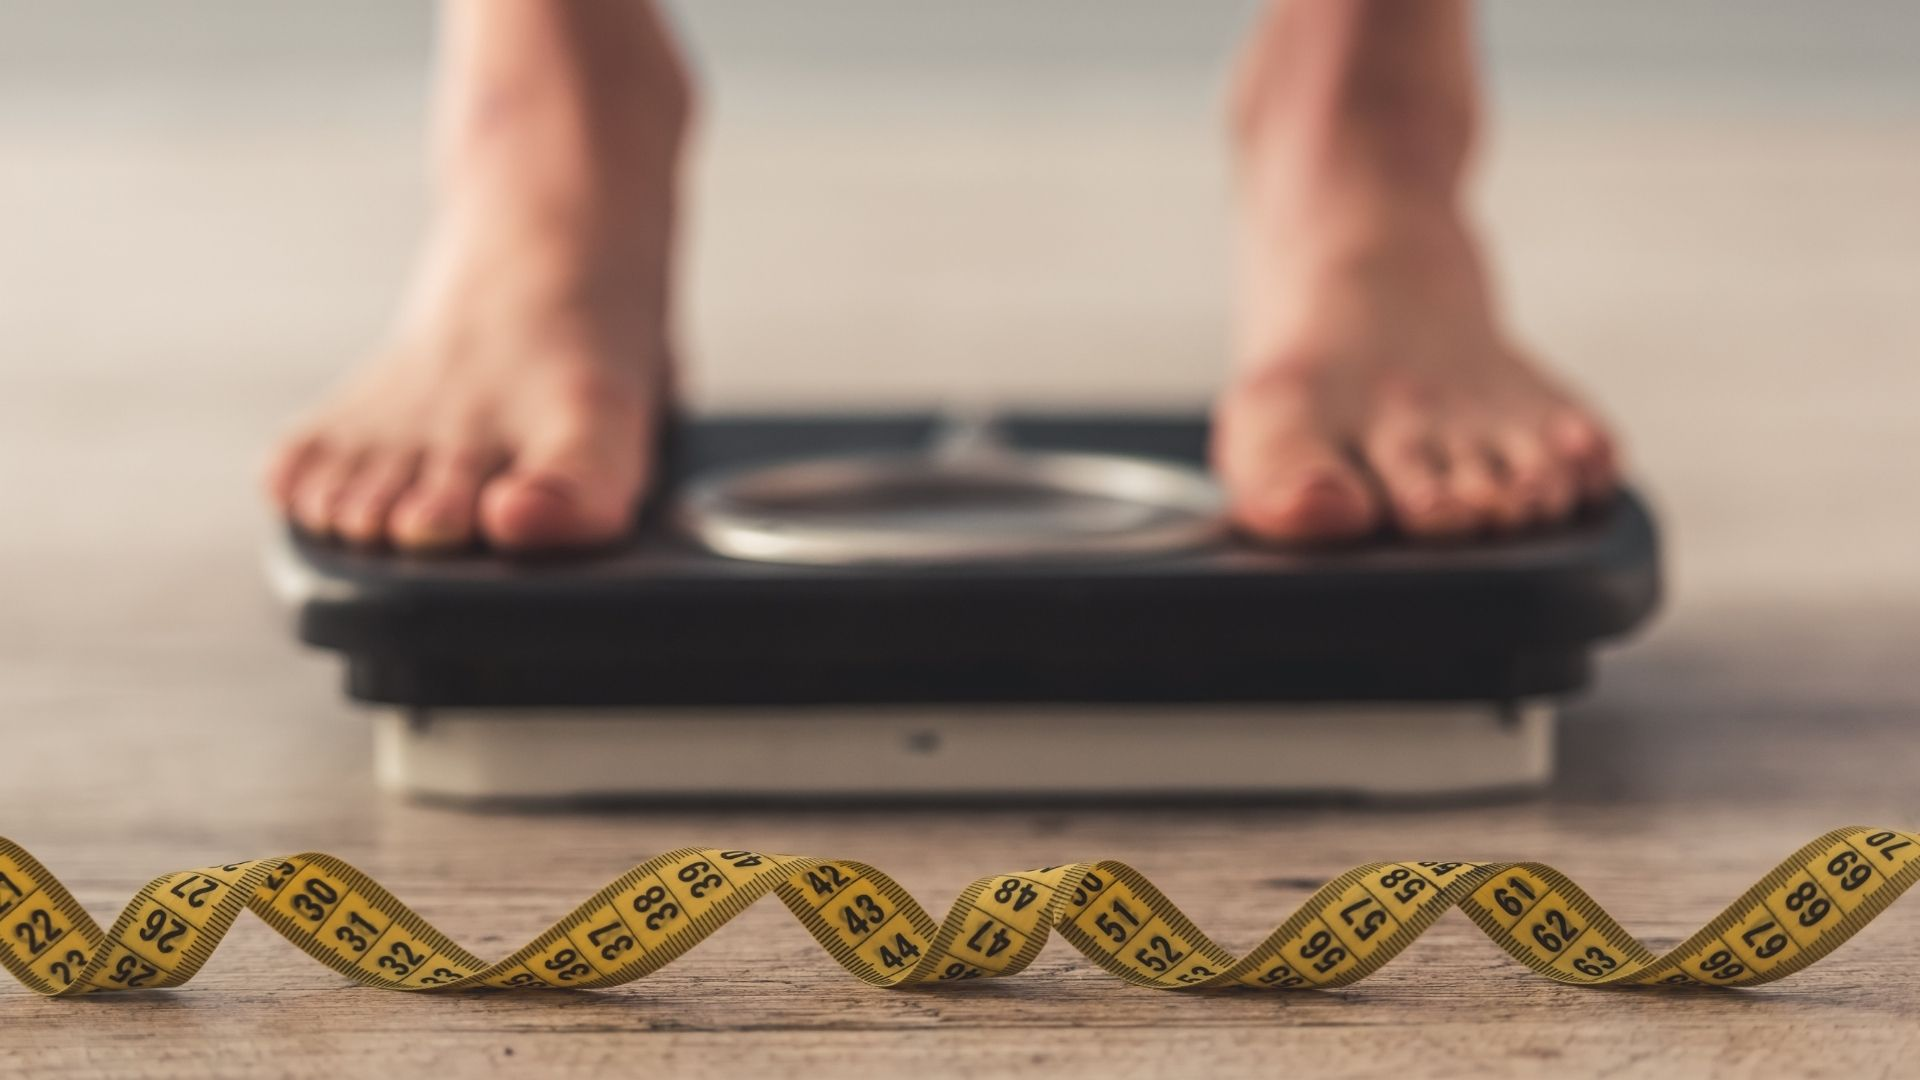 man on weight scale with measuring tape to track his fat loss